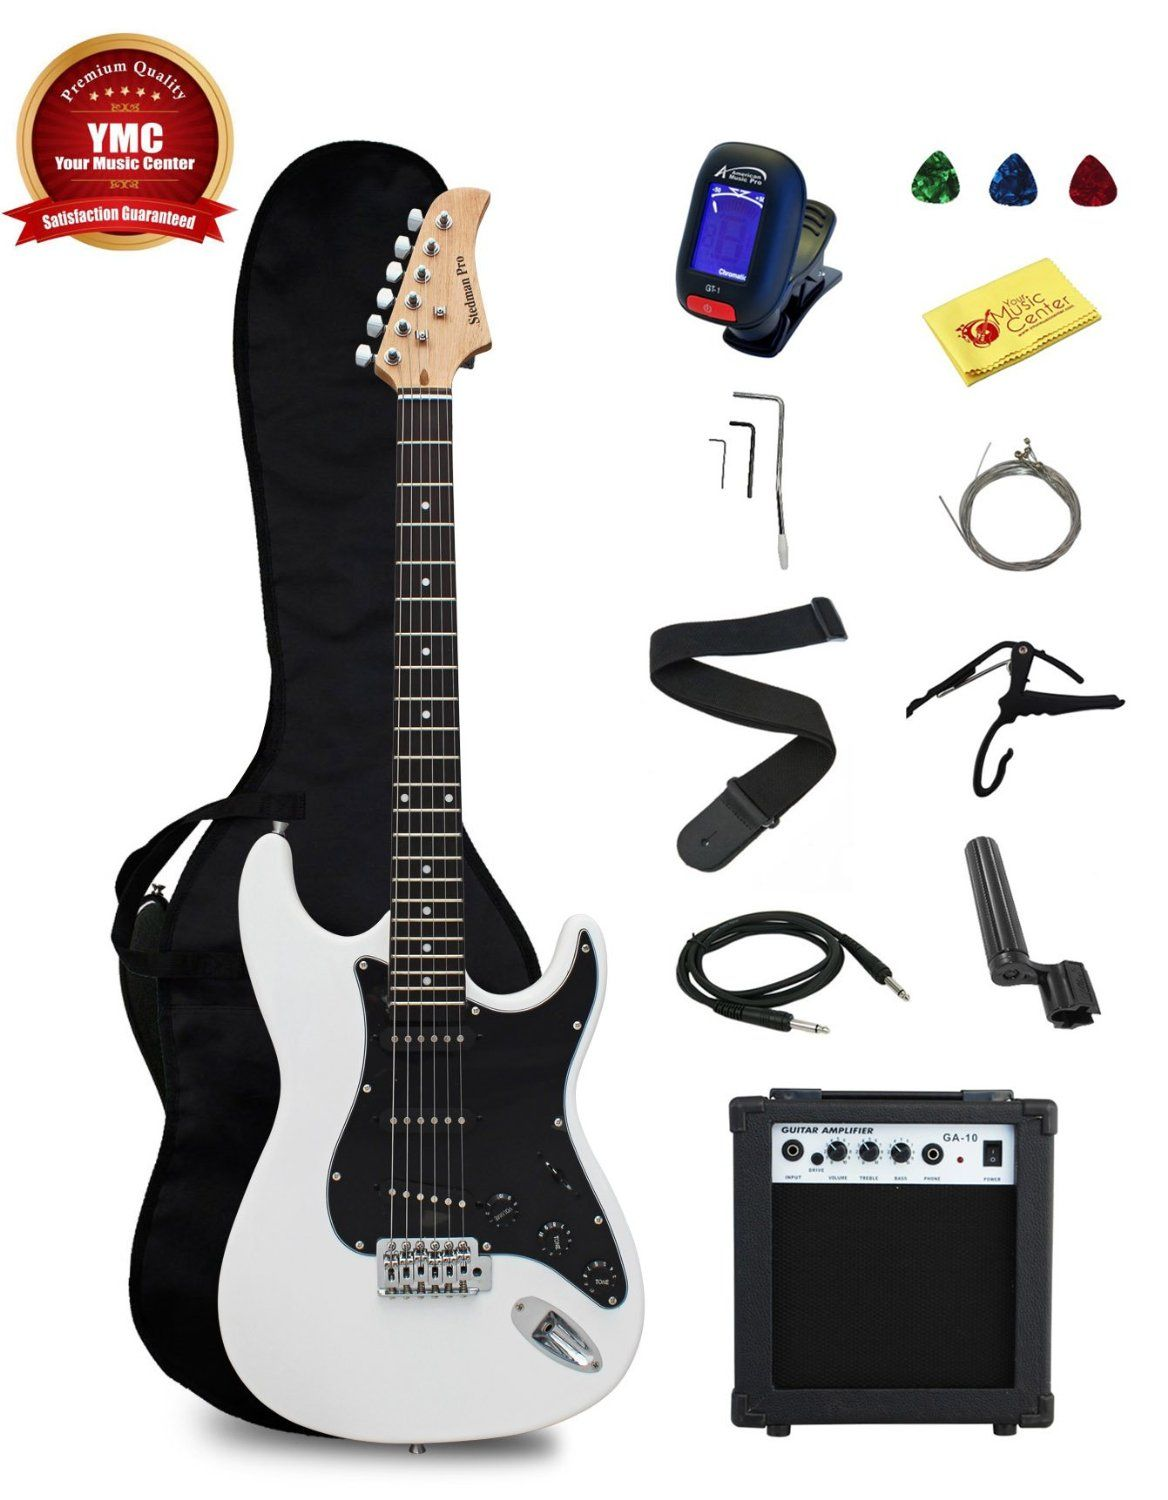 Stedman Pro Beginner Series 39Inch Electric